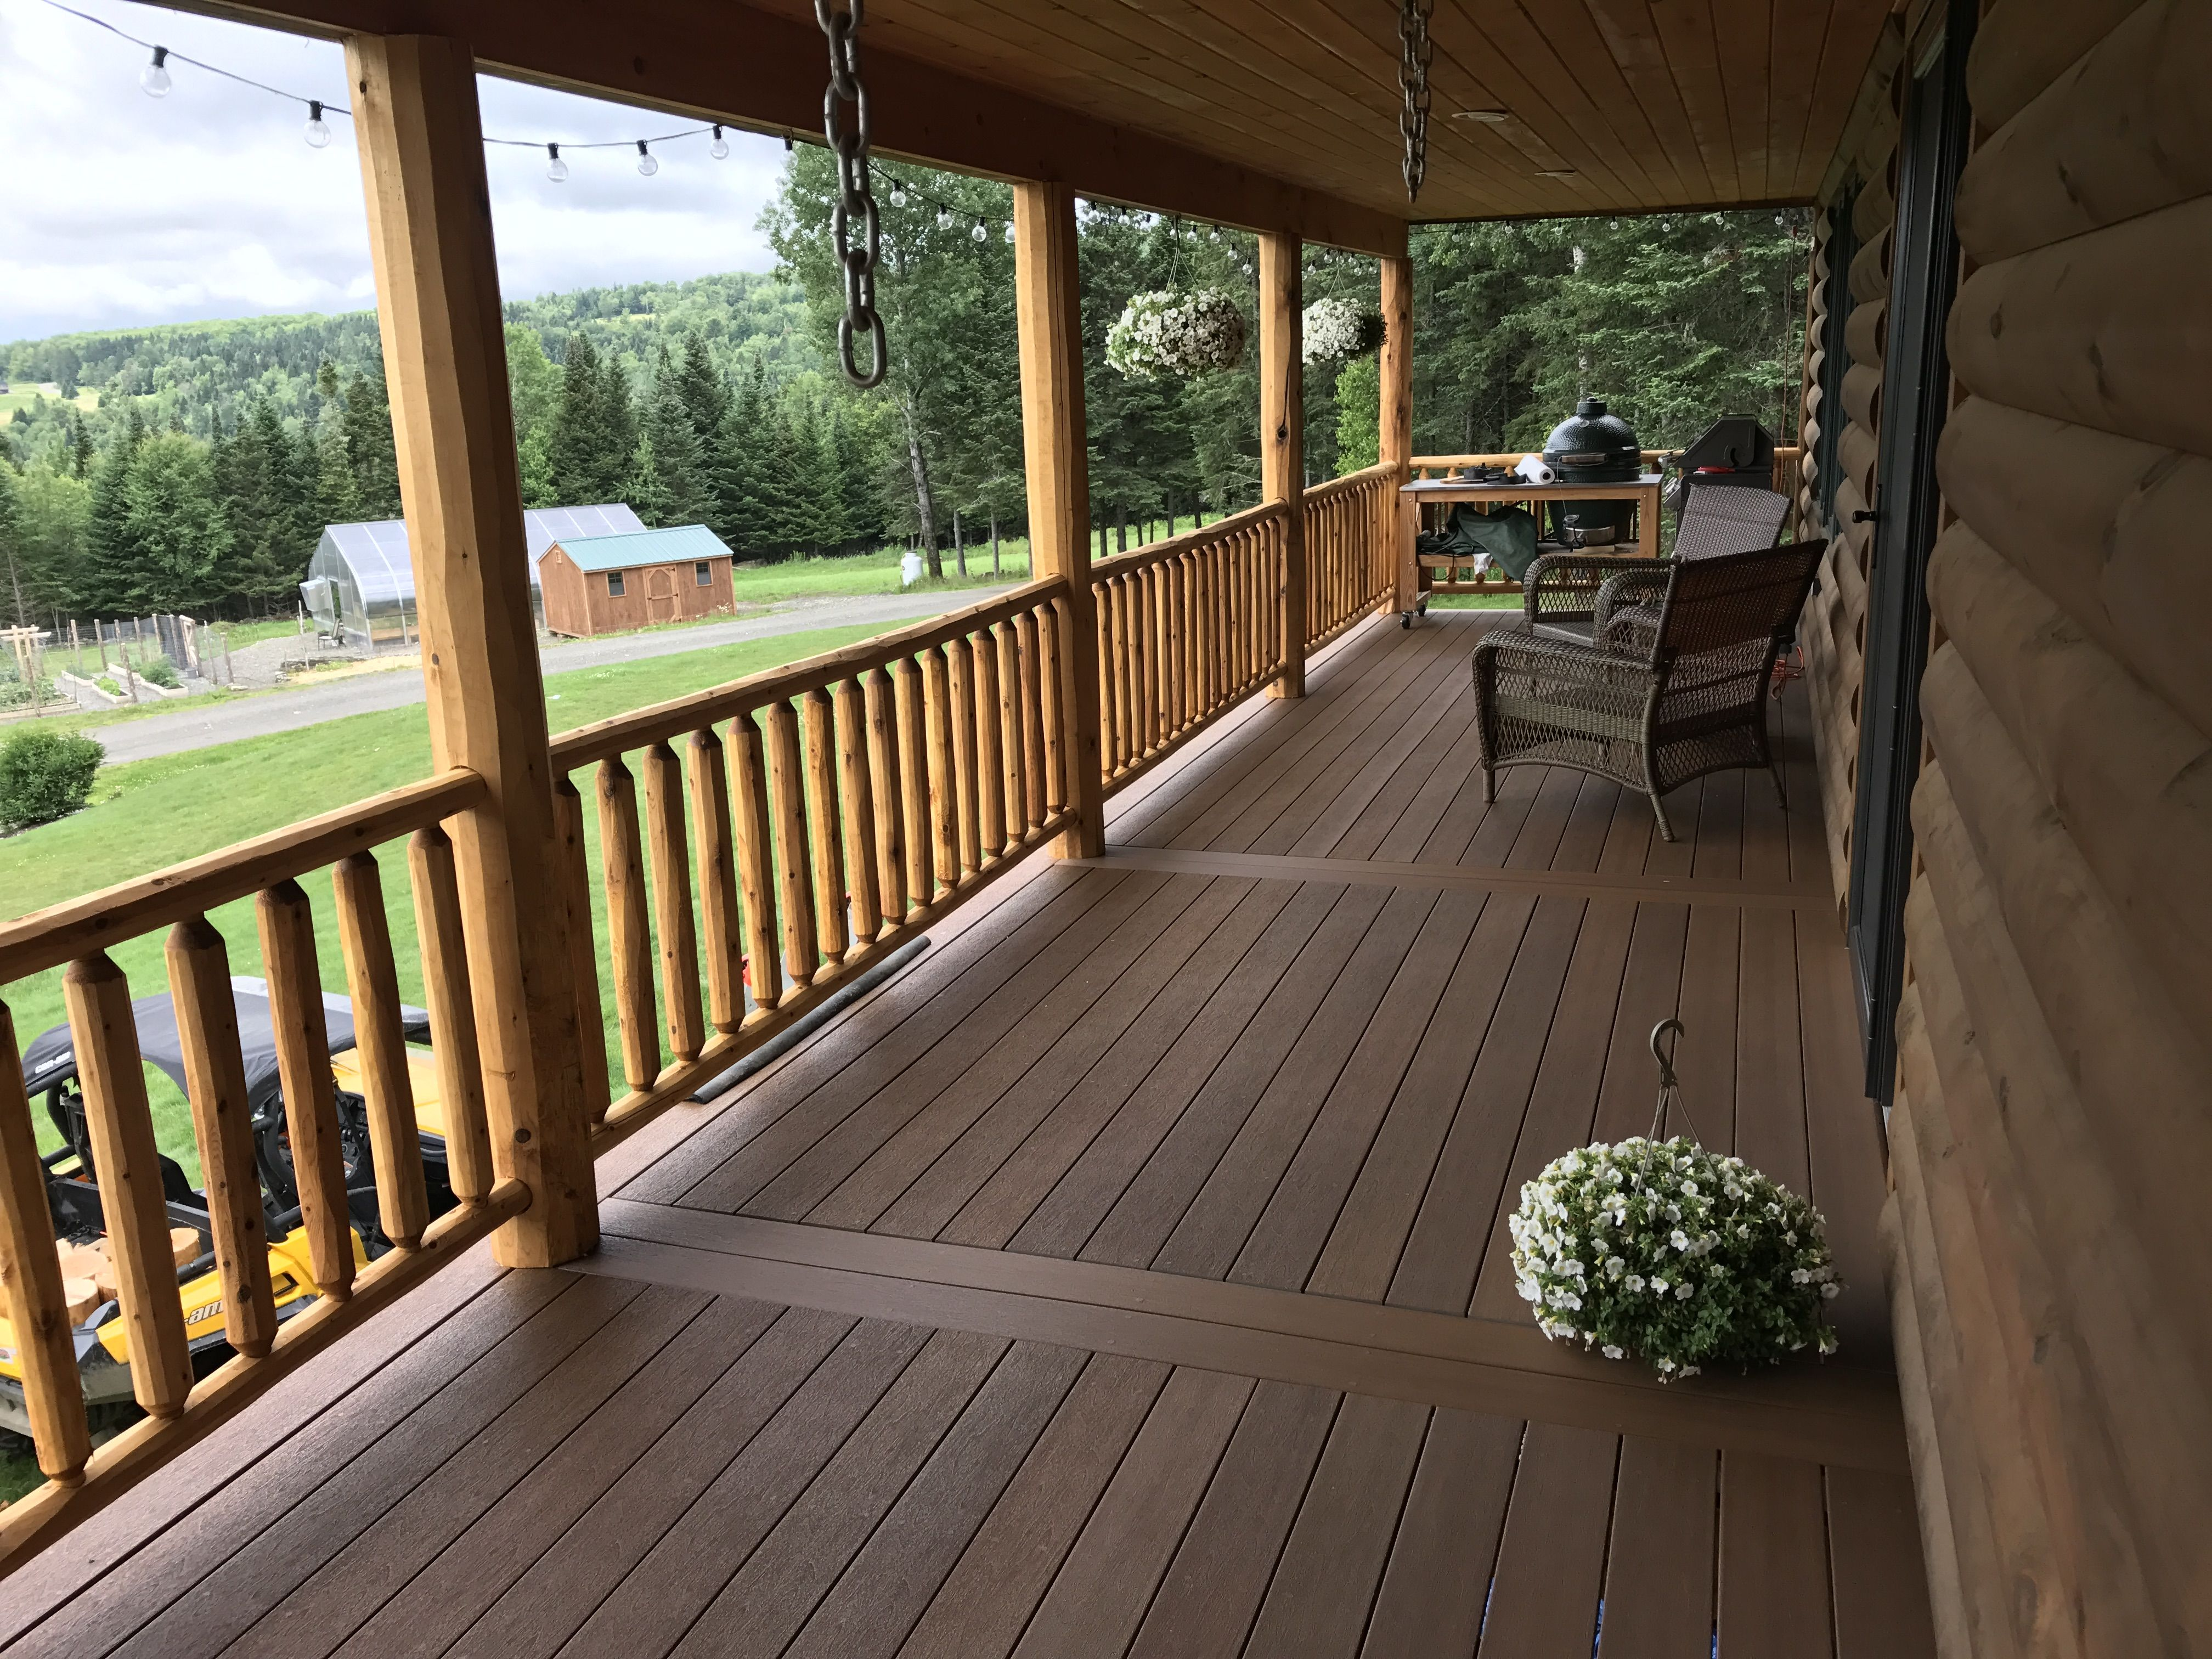 A Fiberon Composite Deck Fits Seamlessly Into This Striking Log Cabin With All The Natural Beauty Of Har Patio Design Composite Decking Smoky Mountains Cabins